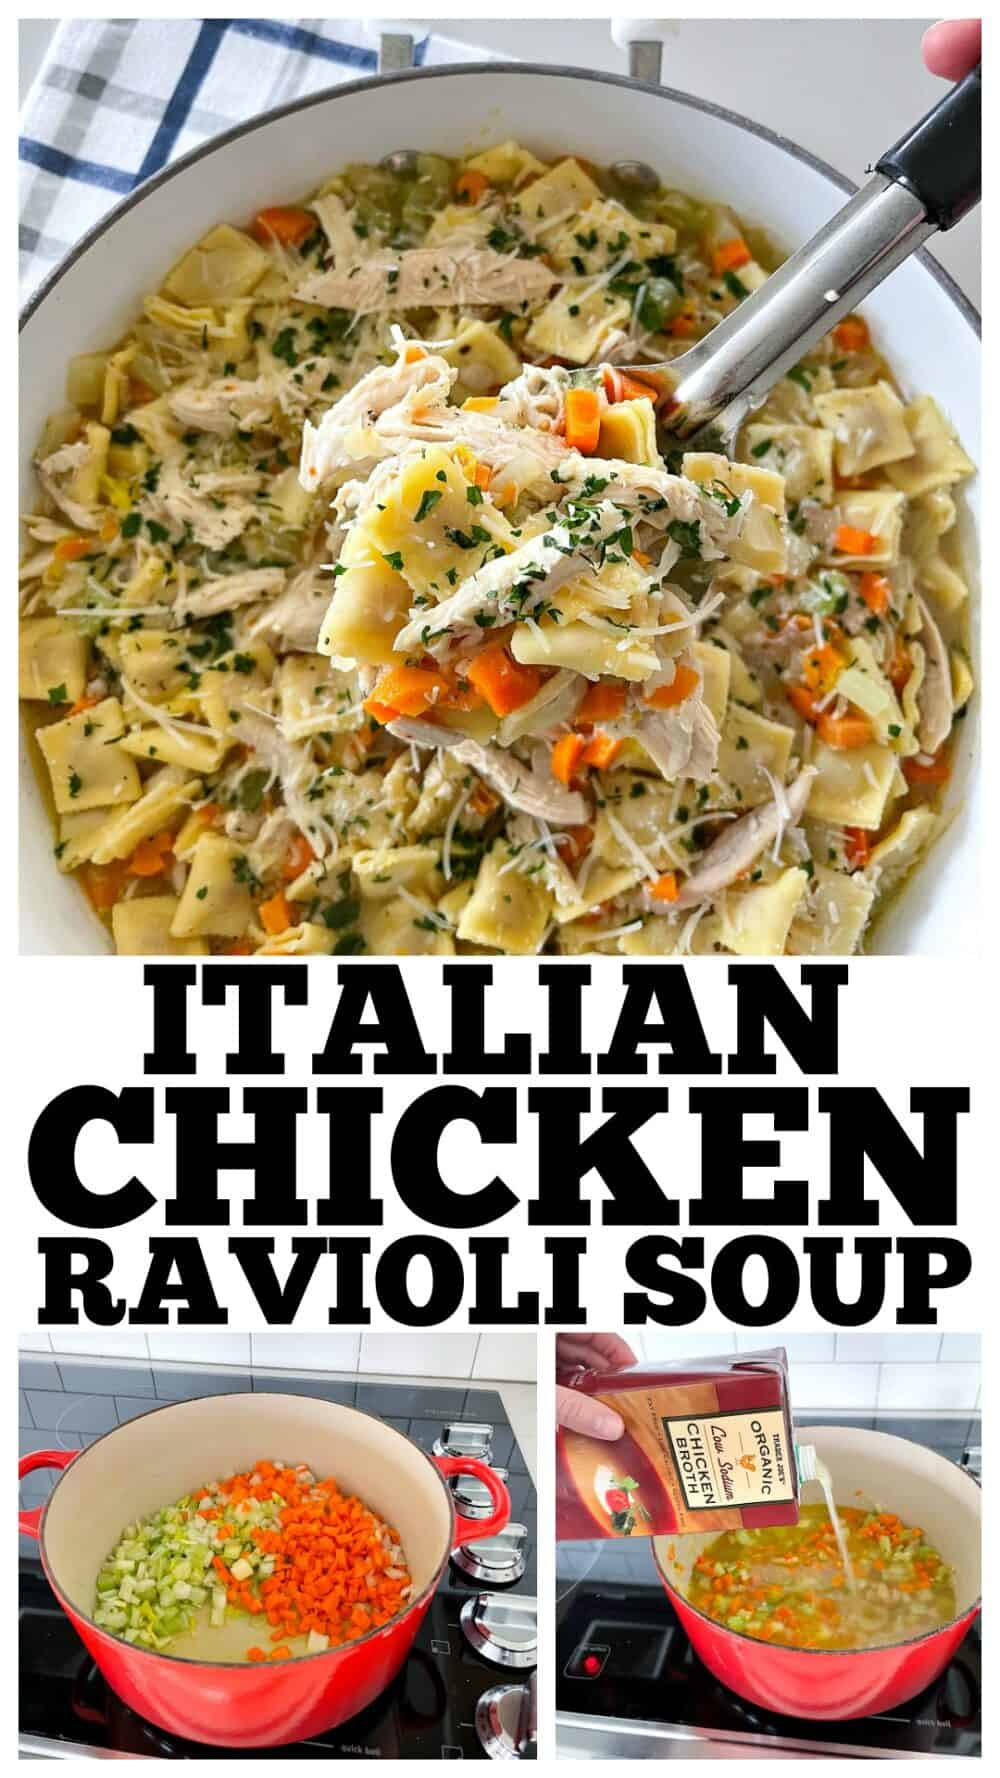 photo collage of ravioli soup